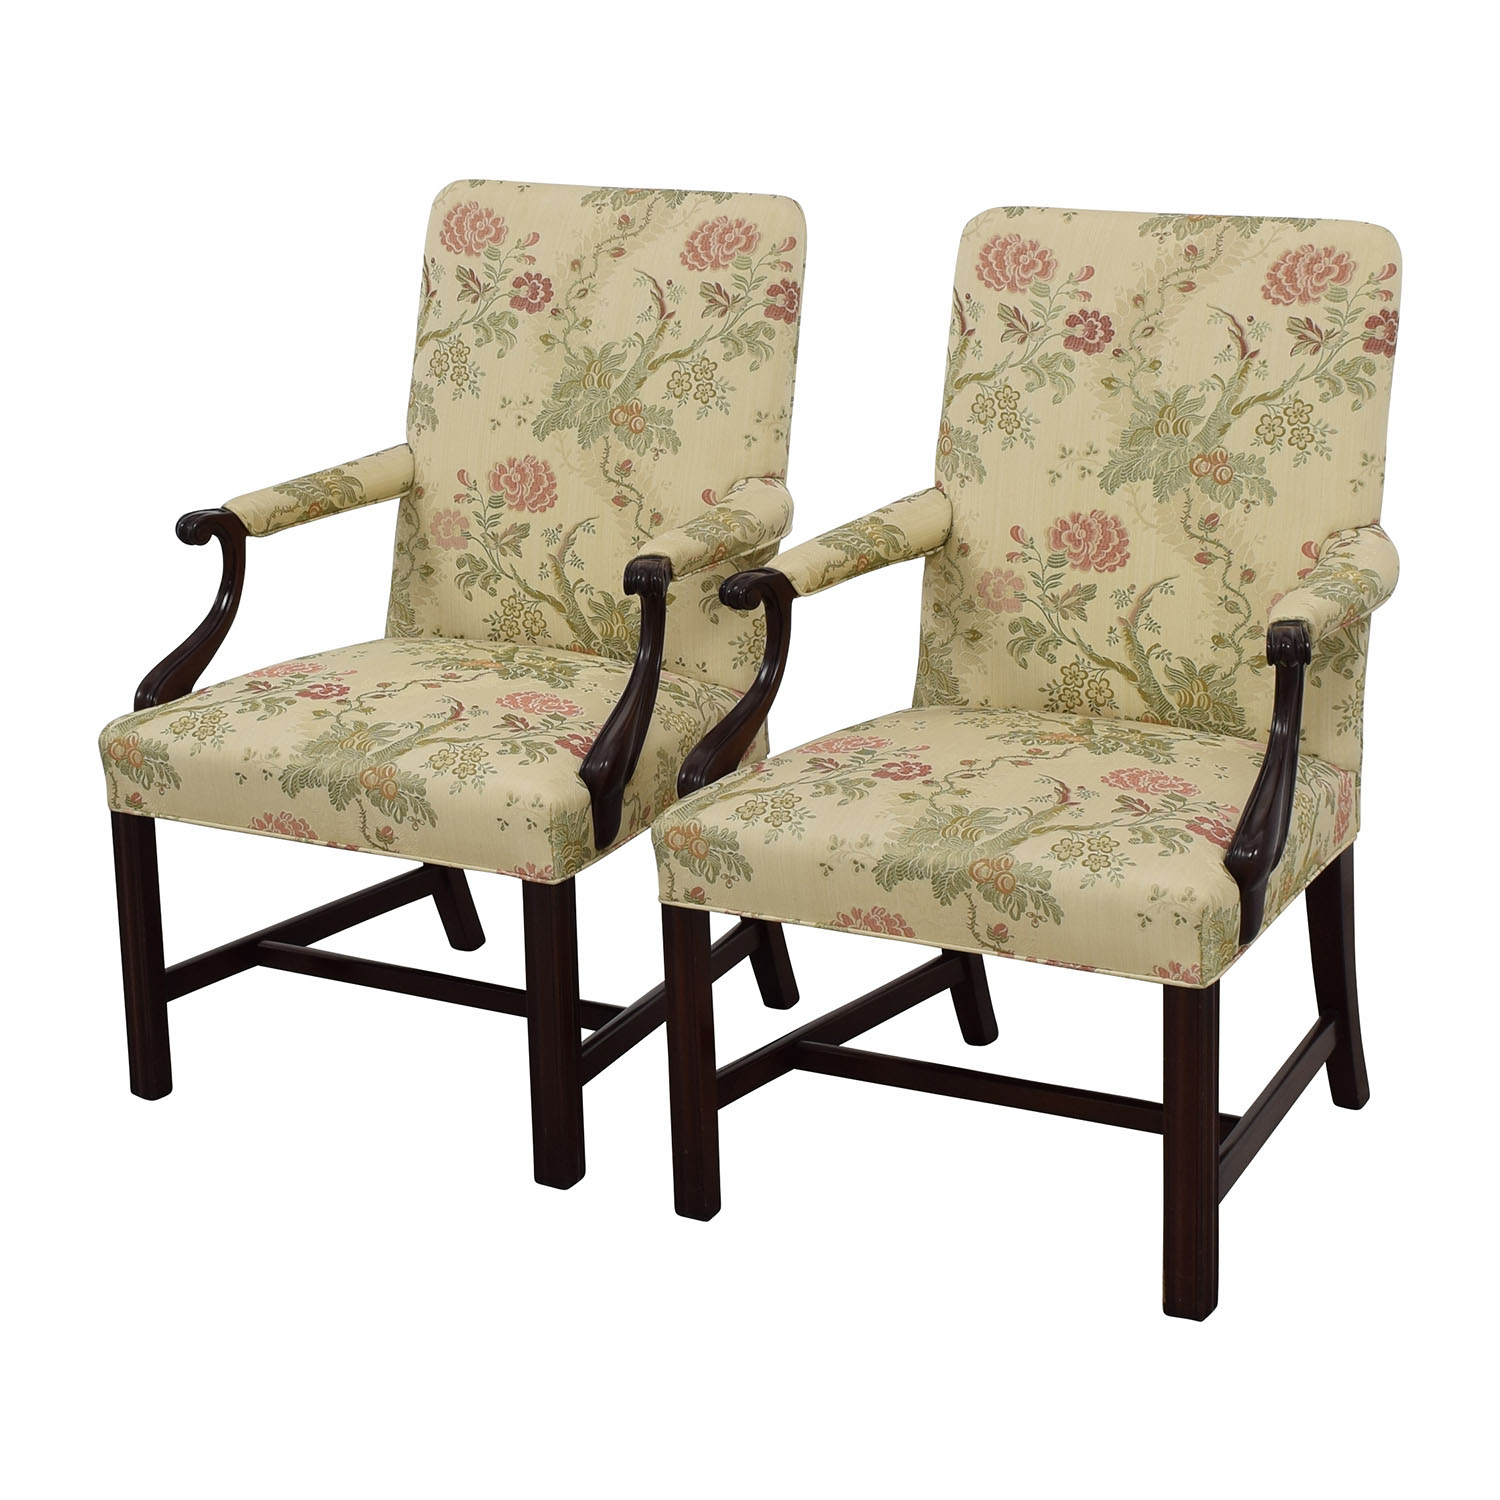 90% OFF - Traditional Upholstered Arm Chair, Set of Two ...